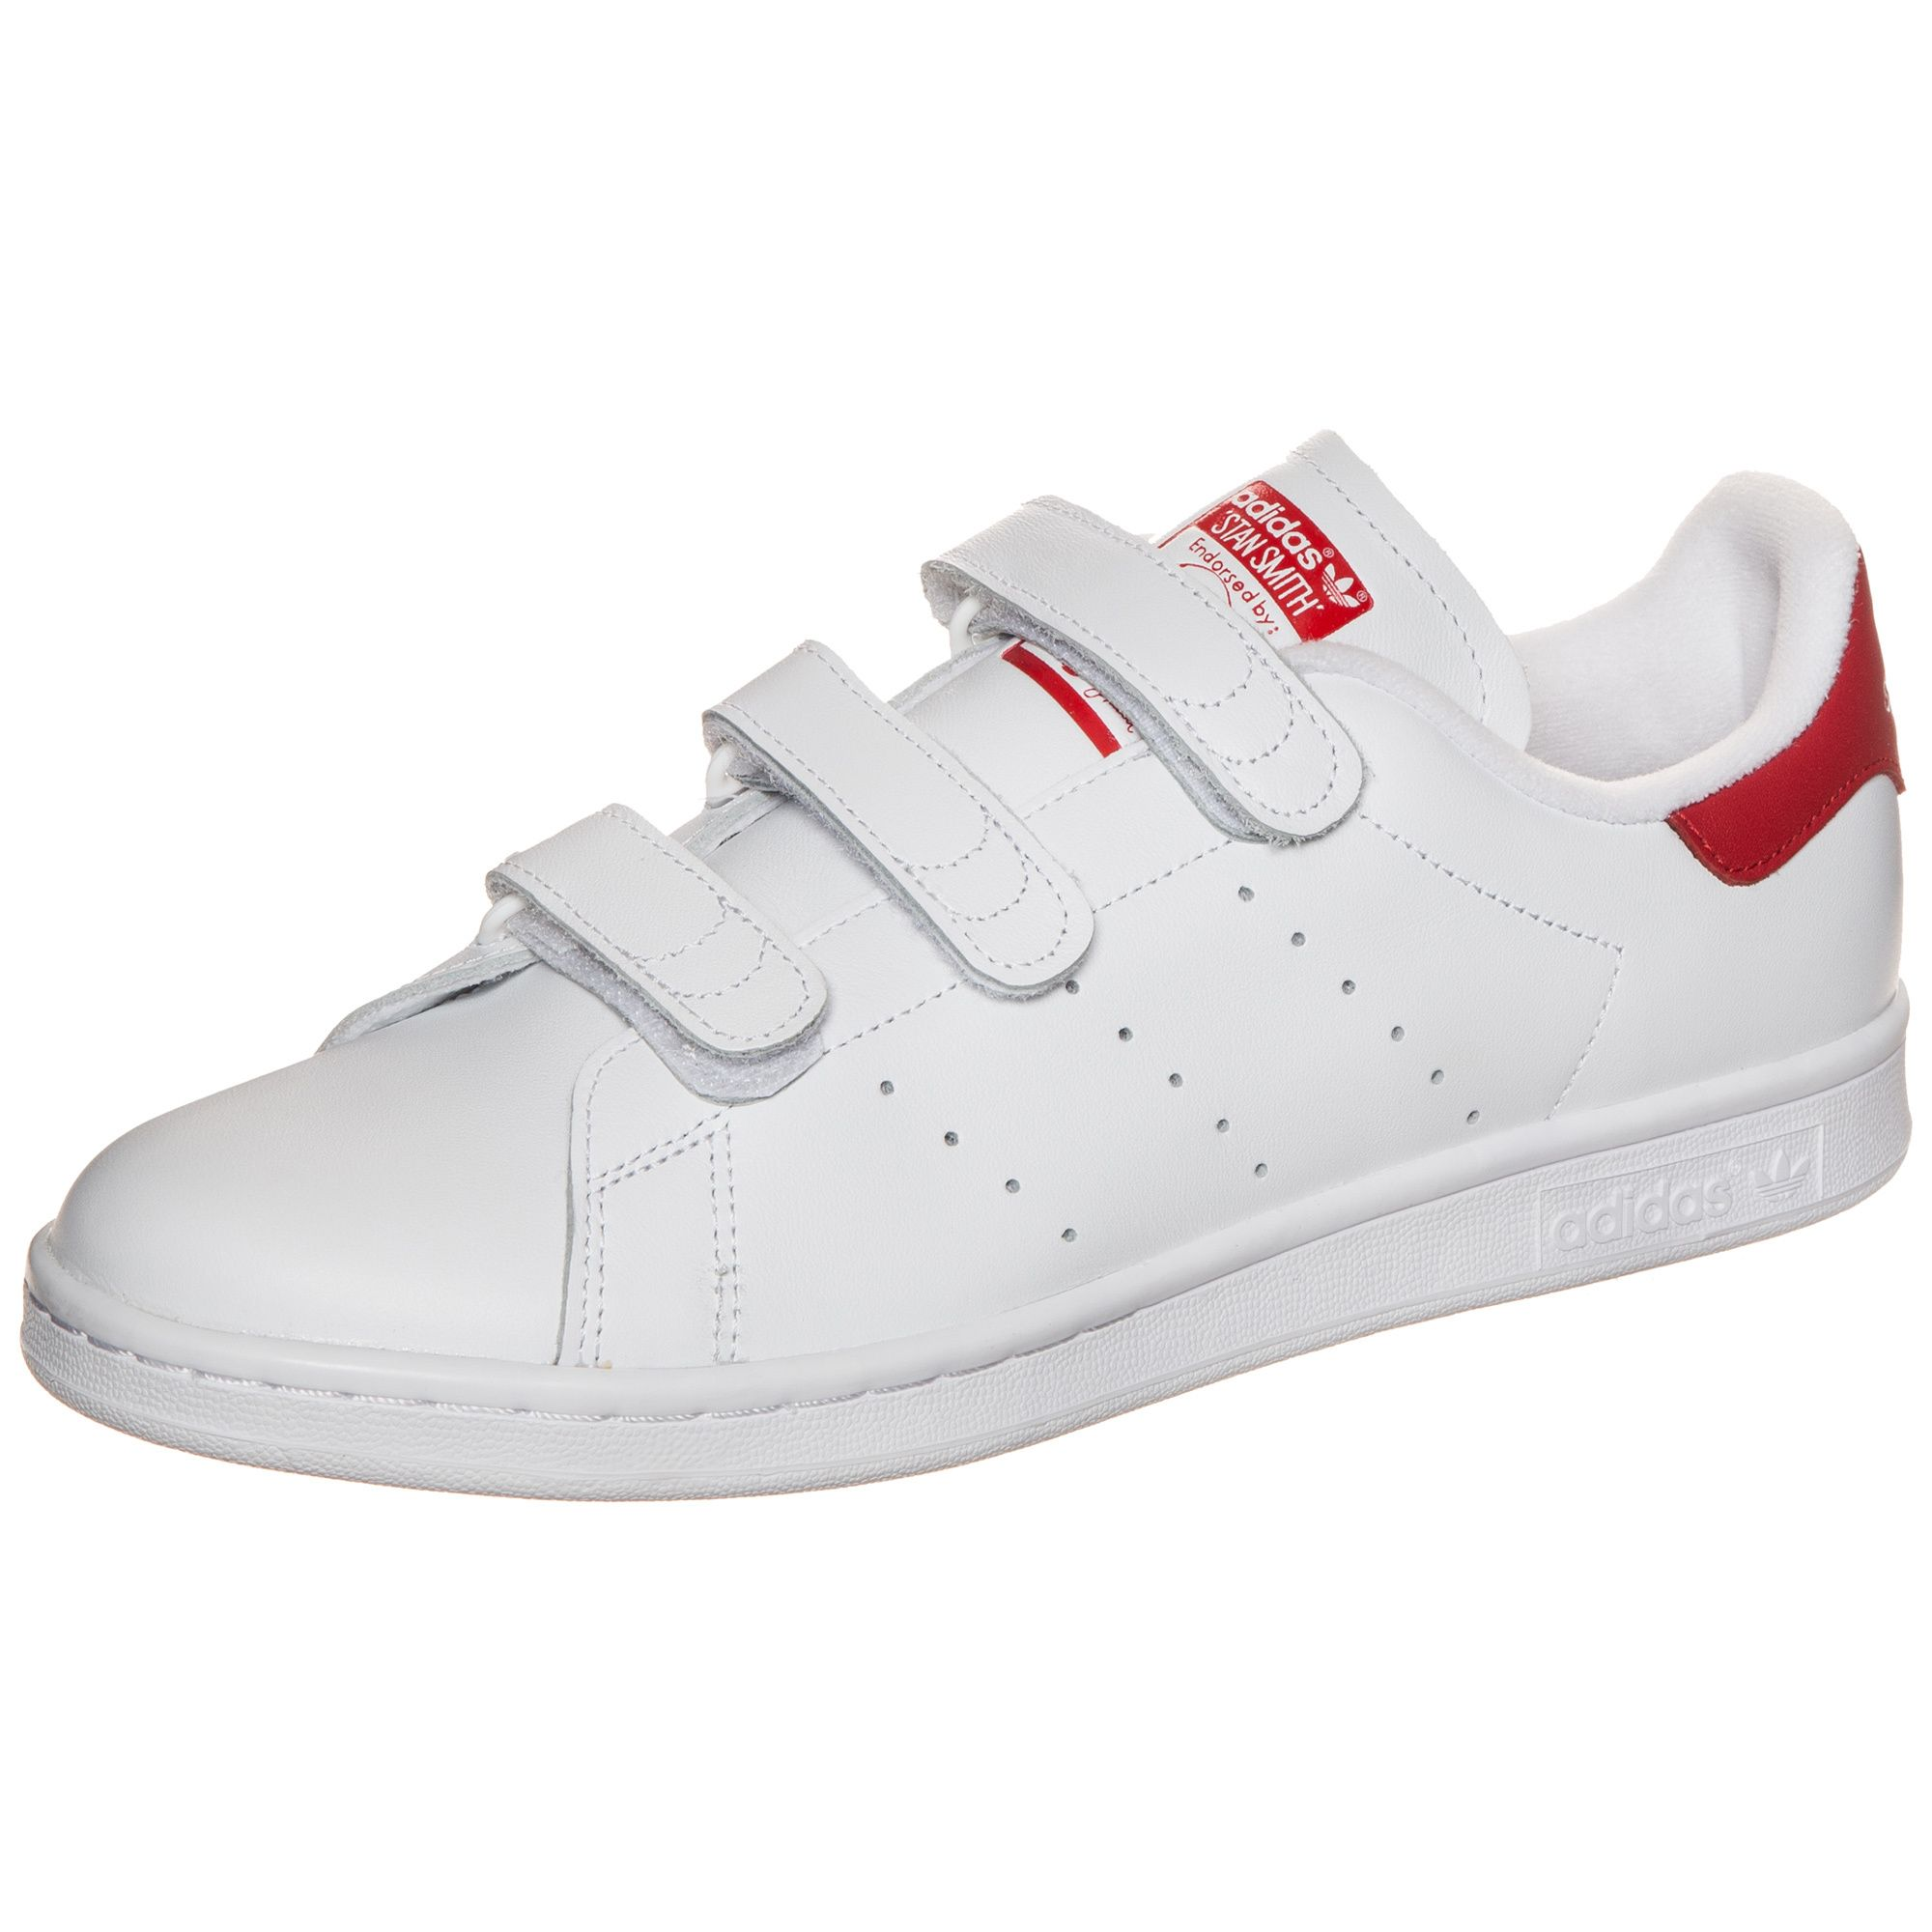 ADIDAS ORIGINALS adidas Originals Stan Smith CF Sneaker